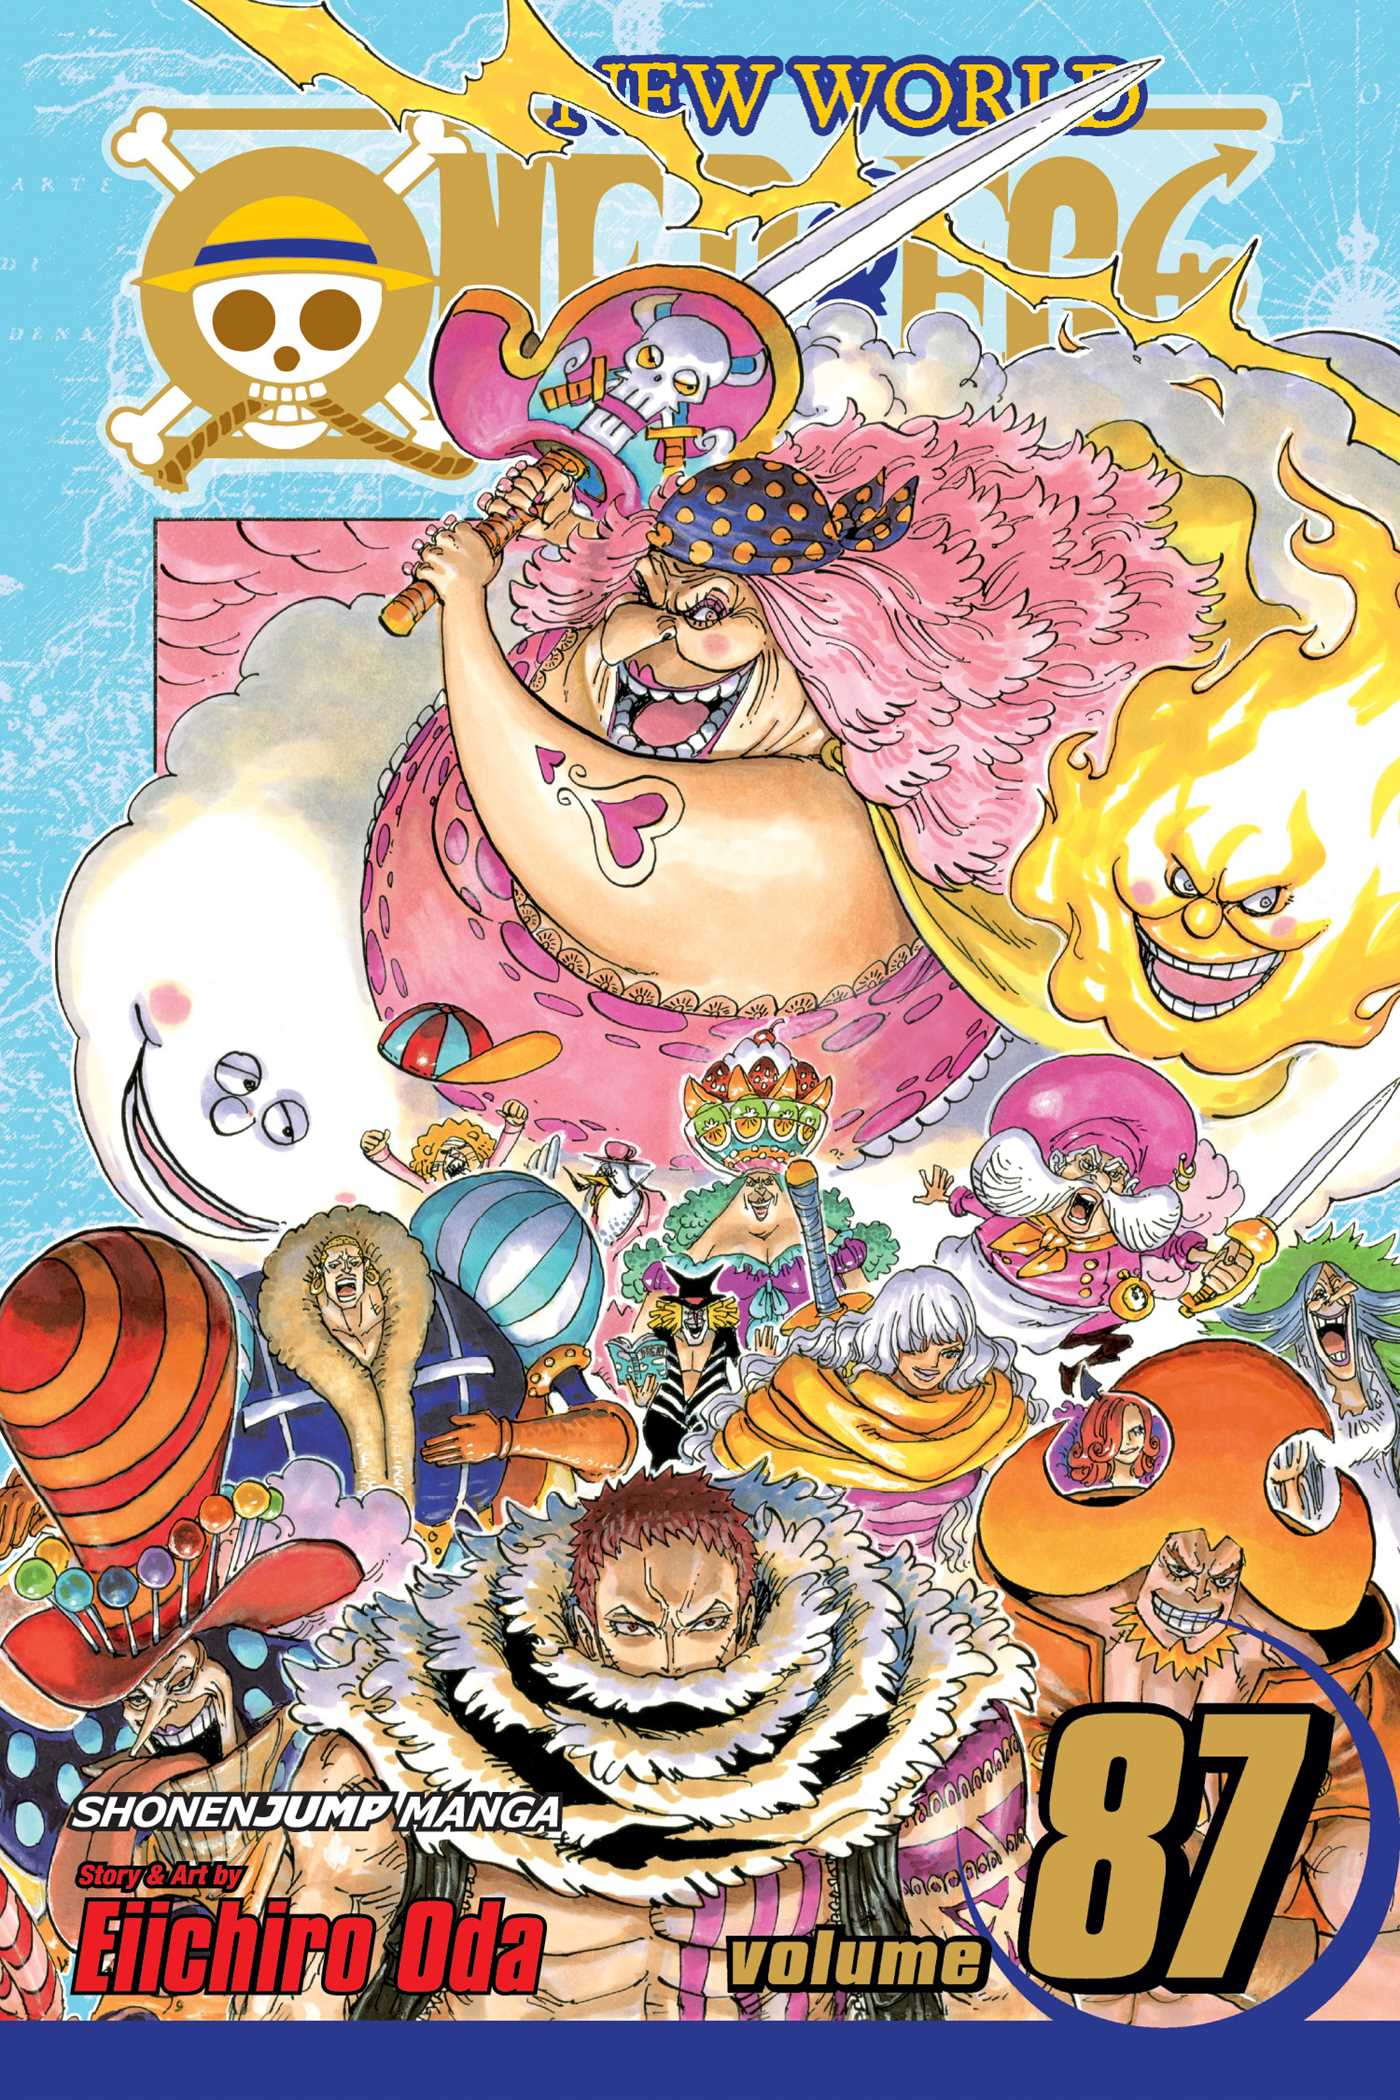 One Piece, Vol. 87   Book by Eiichiro Oda   Official Publisher Page   Simon & Schuster UK